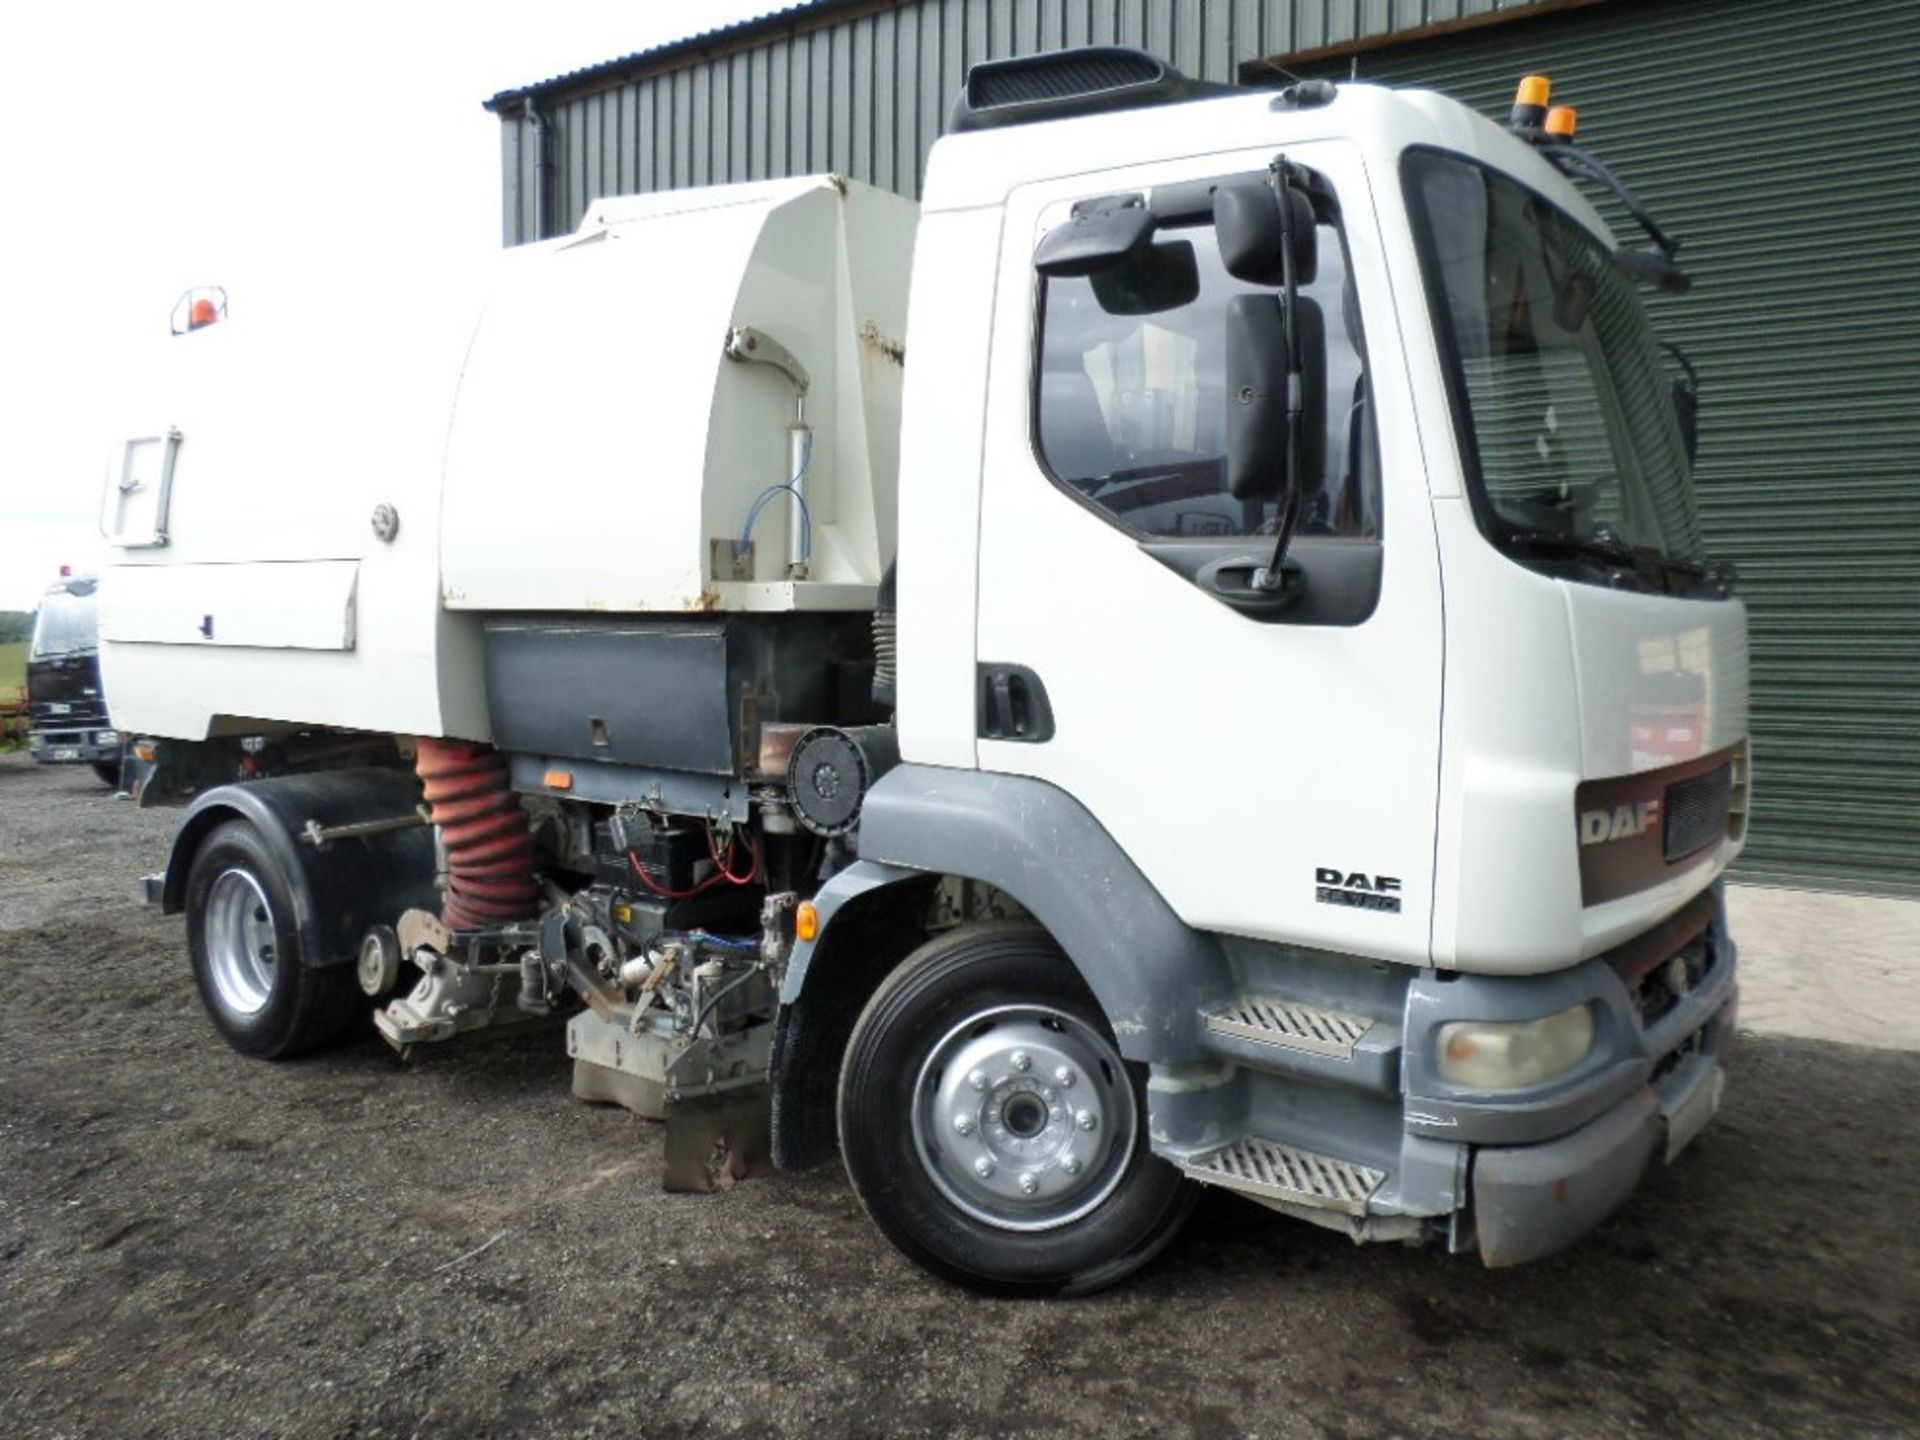 04 reg DAF LF 55.160 JOHNSON SWEEPER (LOCATION SHEFFIELD) 1ST REG 04/04, 93408M, V5 HERE, 2 FORMER